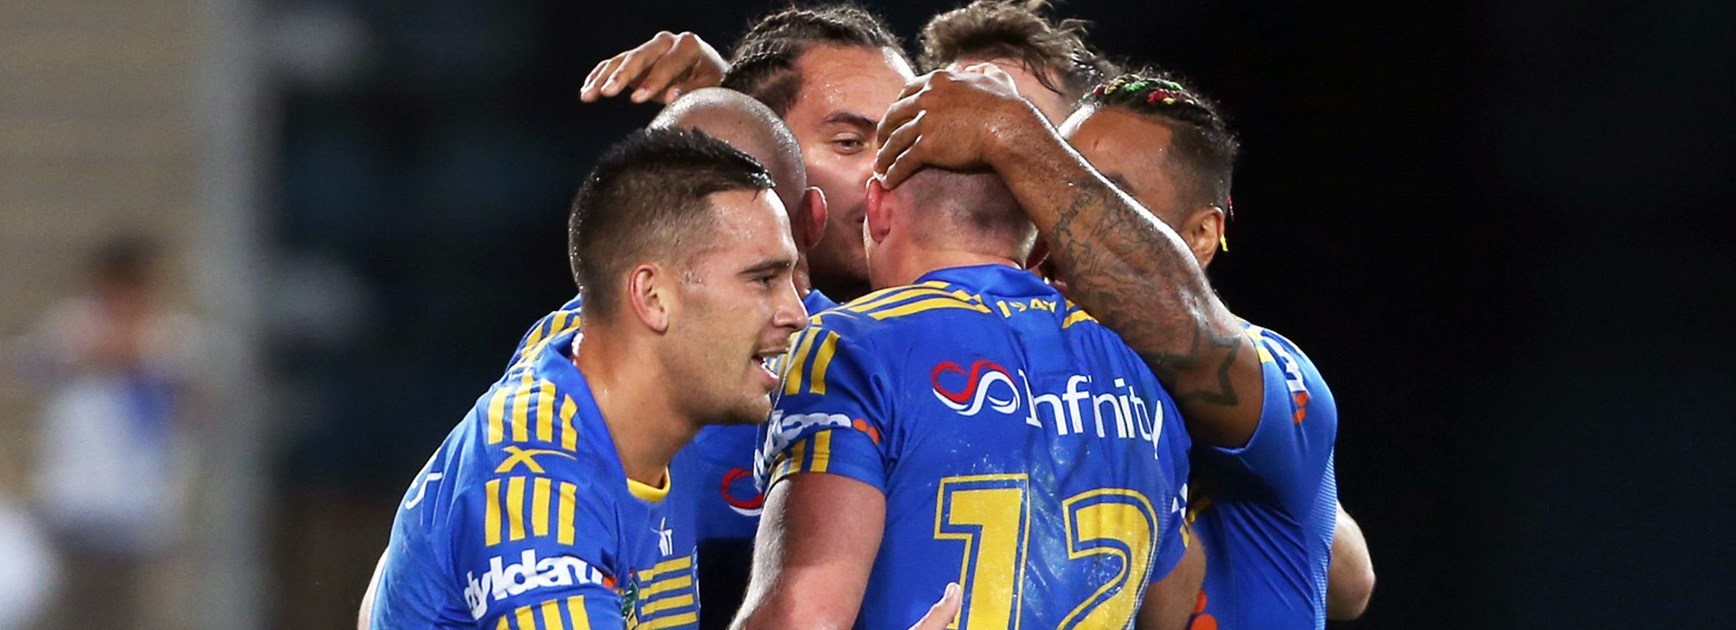 Eels players celebrate during their win over the Bulldogs in Round 9.